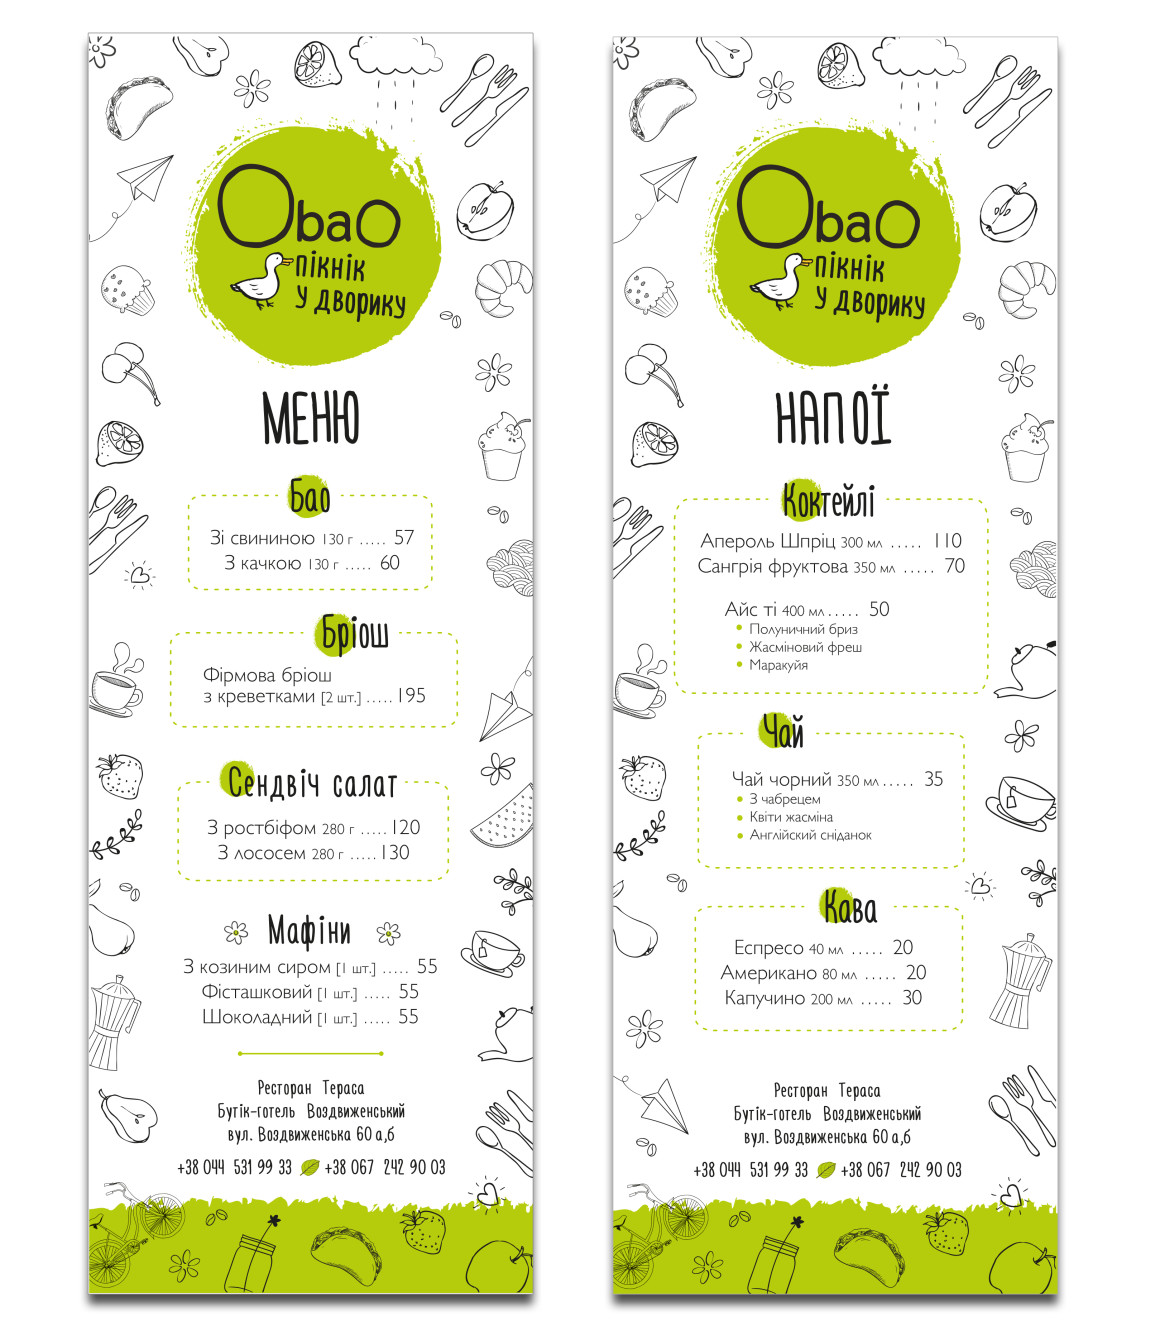 ObaO_menu_105x297mm_ua